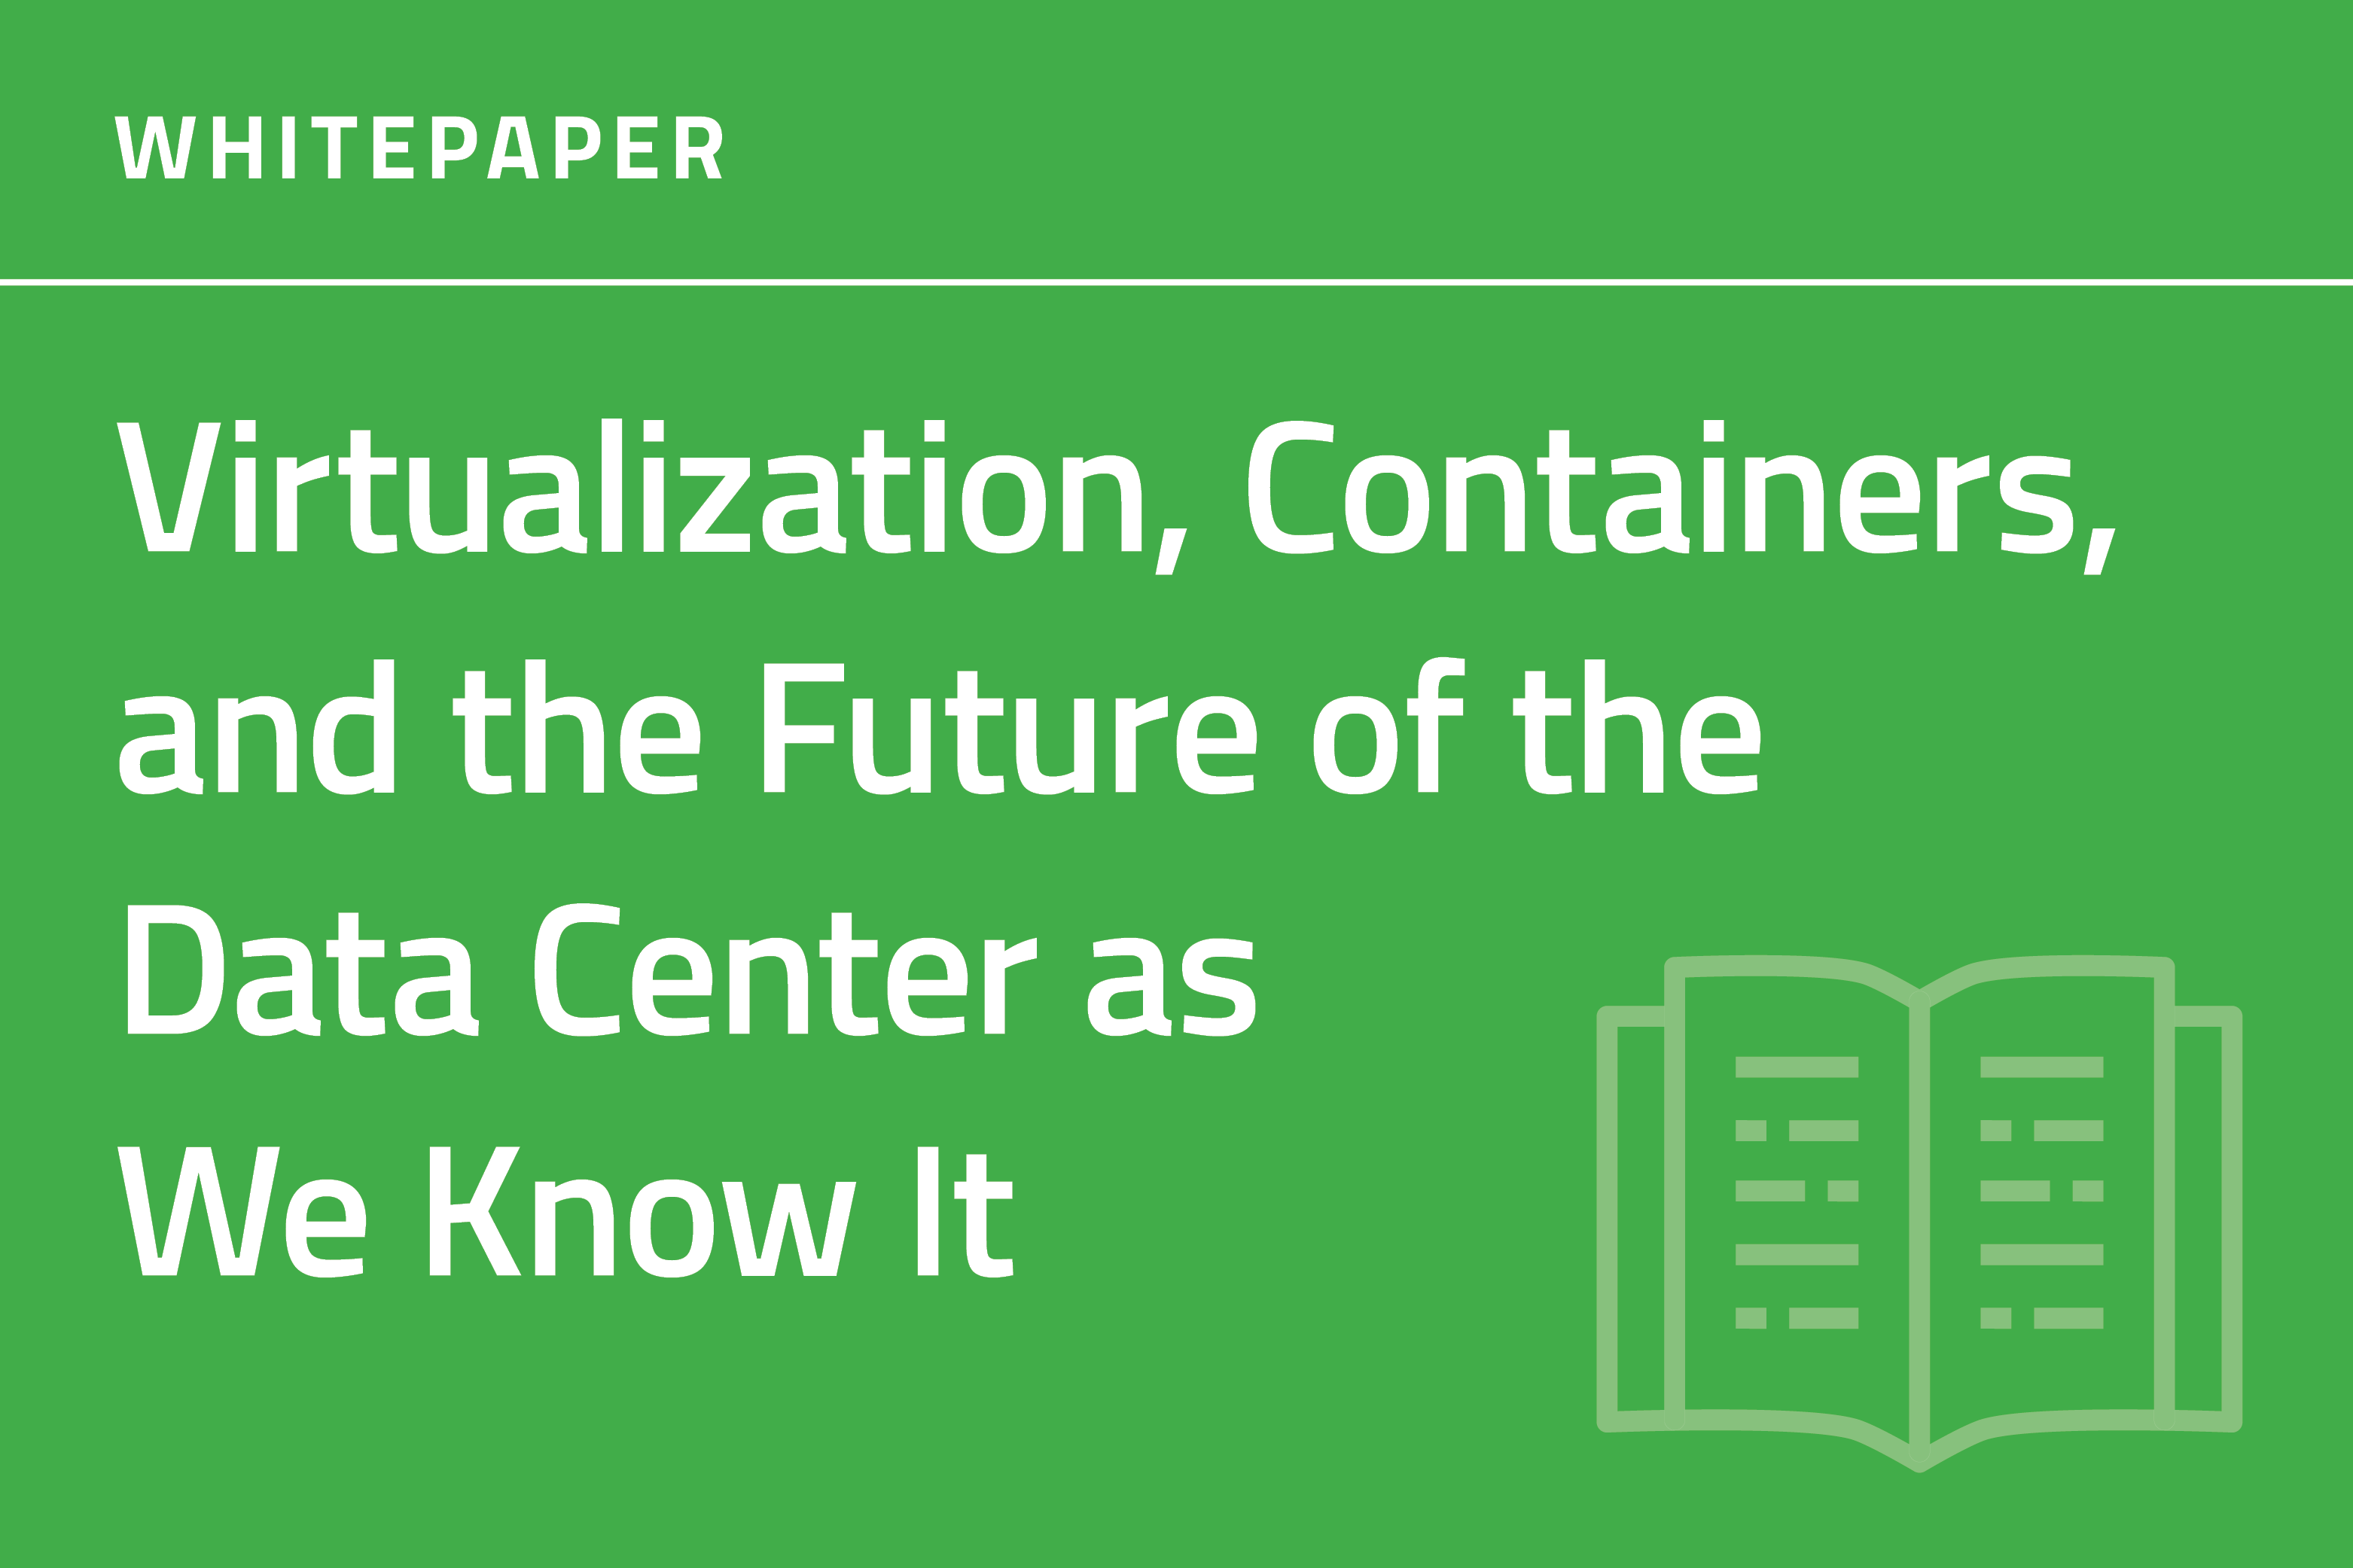 Virtualization, Containers, and the Future of the Data Center as We Know It